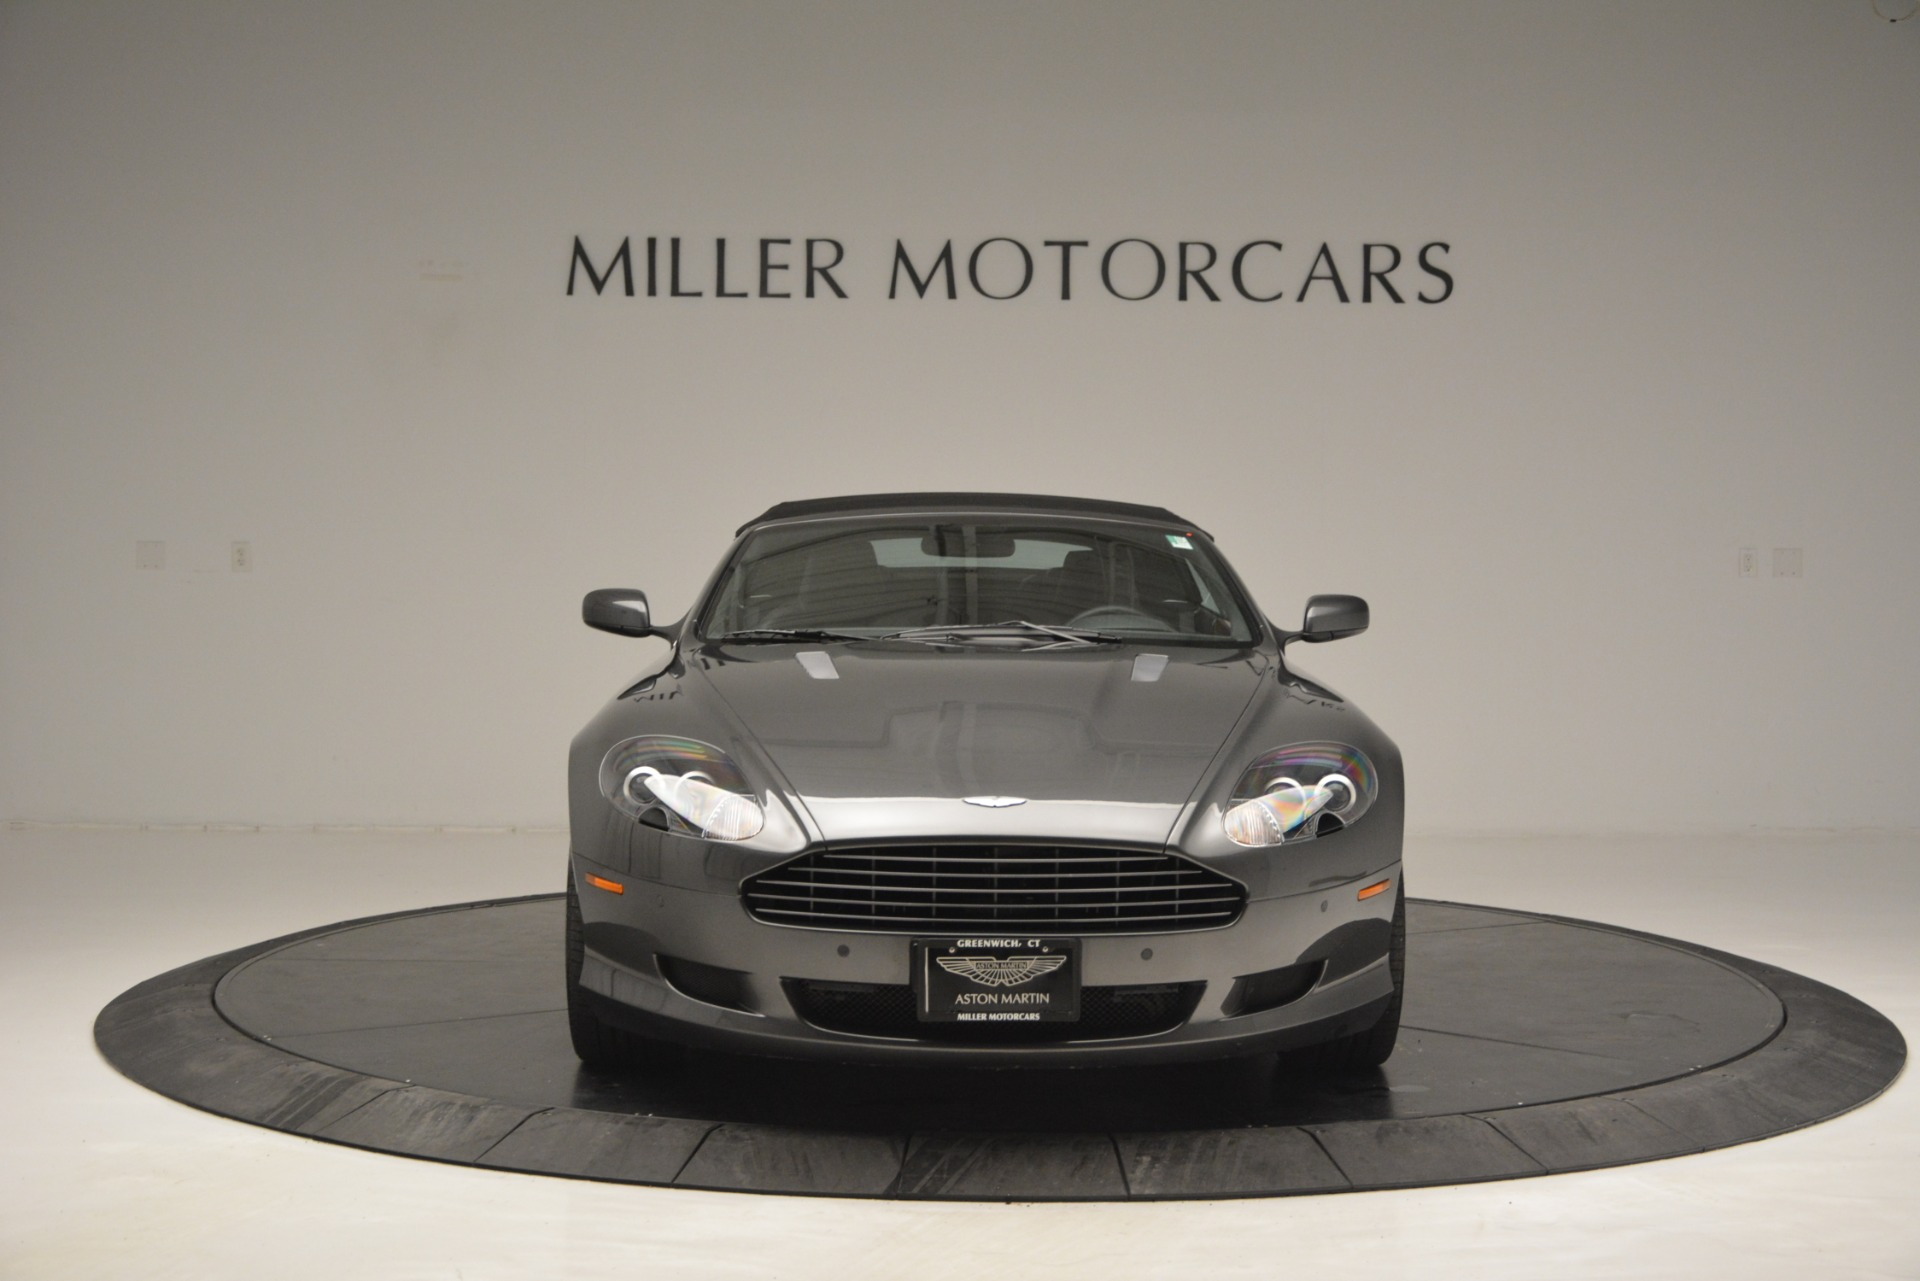 Used 2009 Aston Martin DB9 Convertible For Sale In Westport, CT 2930_p16